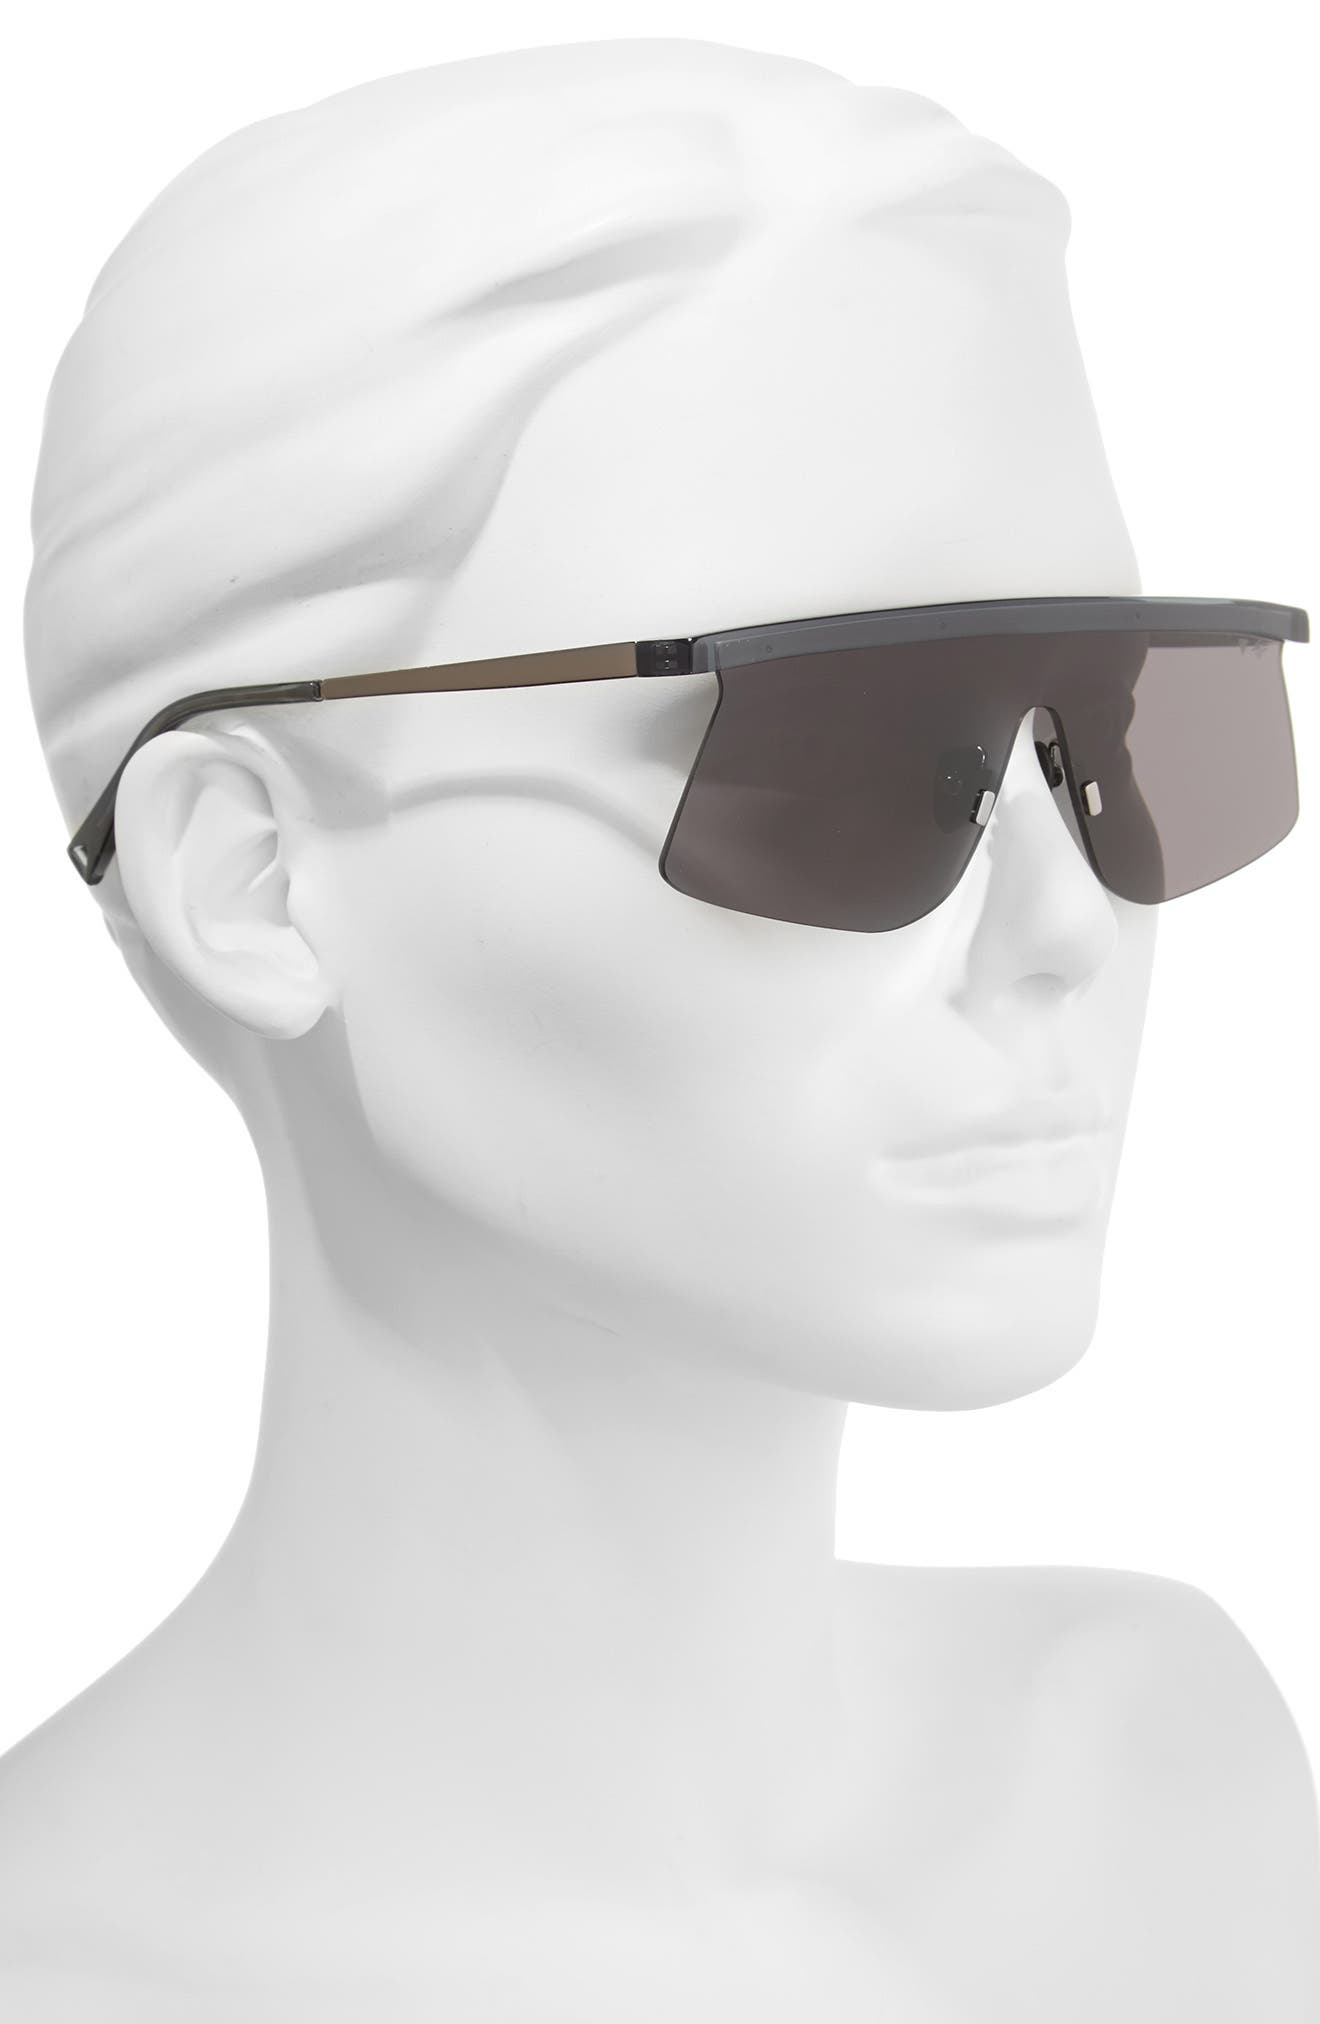 Shade Shield Sunglasses,                             Alternate thumbnail 2, color,                             Crystal Charcoal